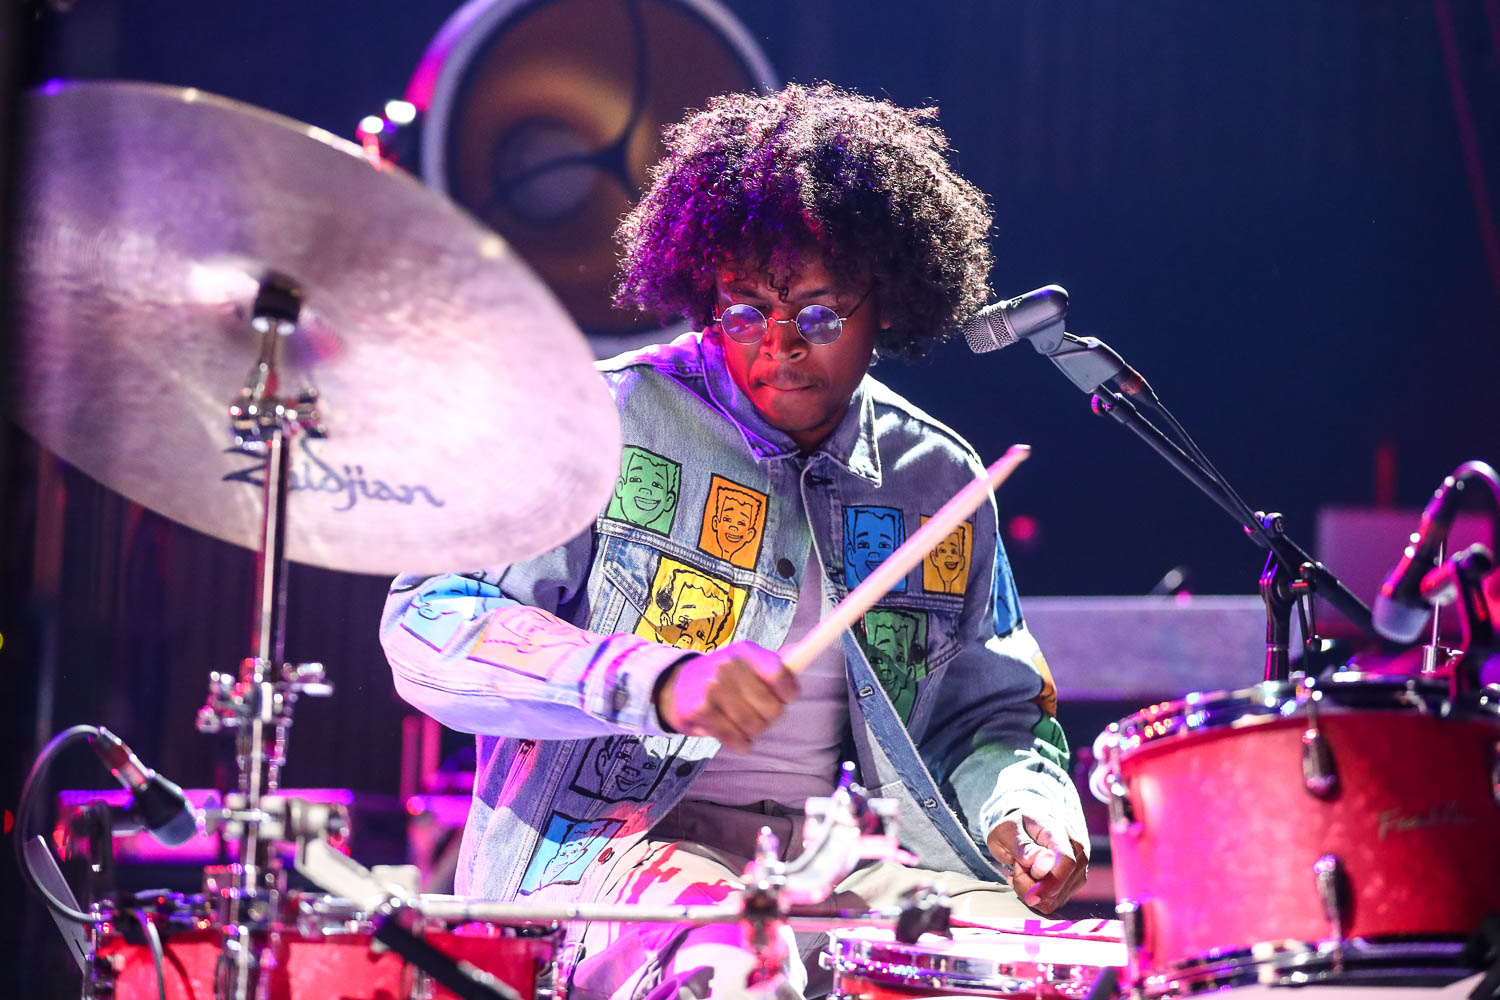 Darius Fitzgerald, drummer of The New Respects